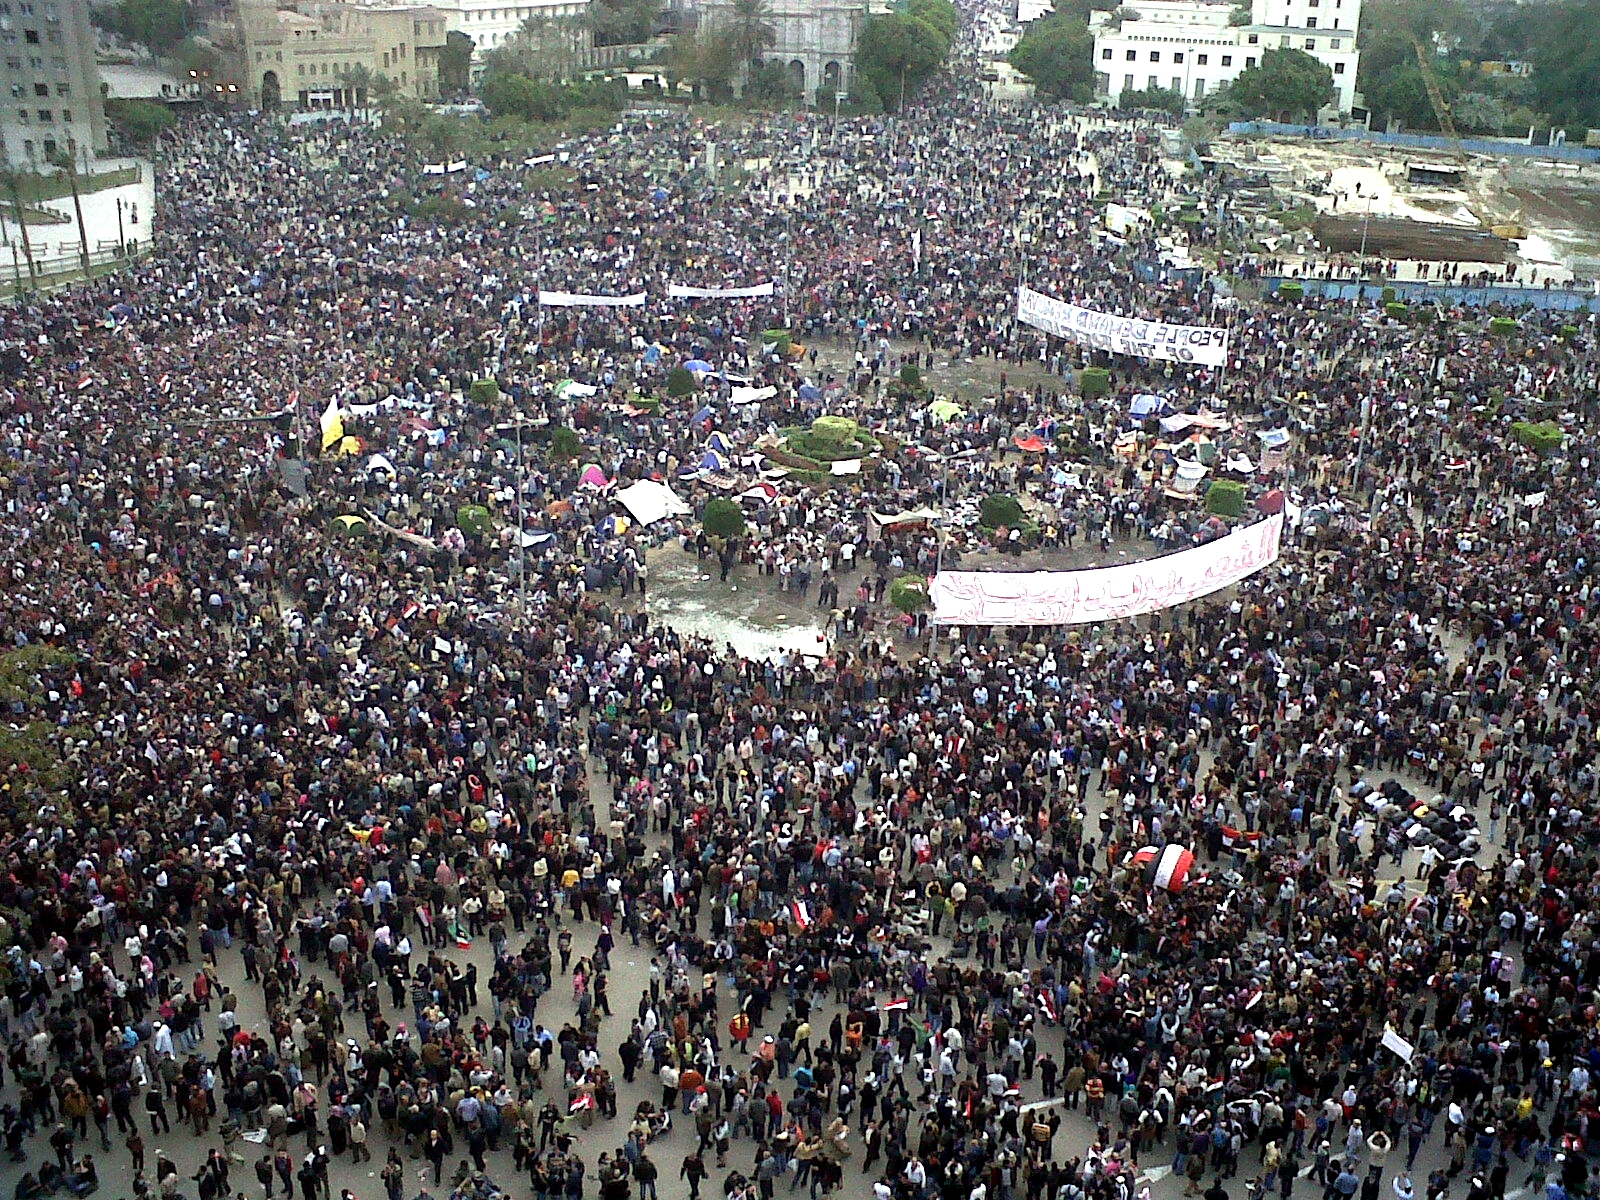 Tahrir Square - Photo by flickr user monasosh